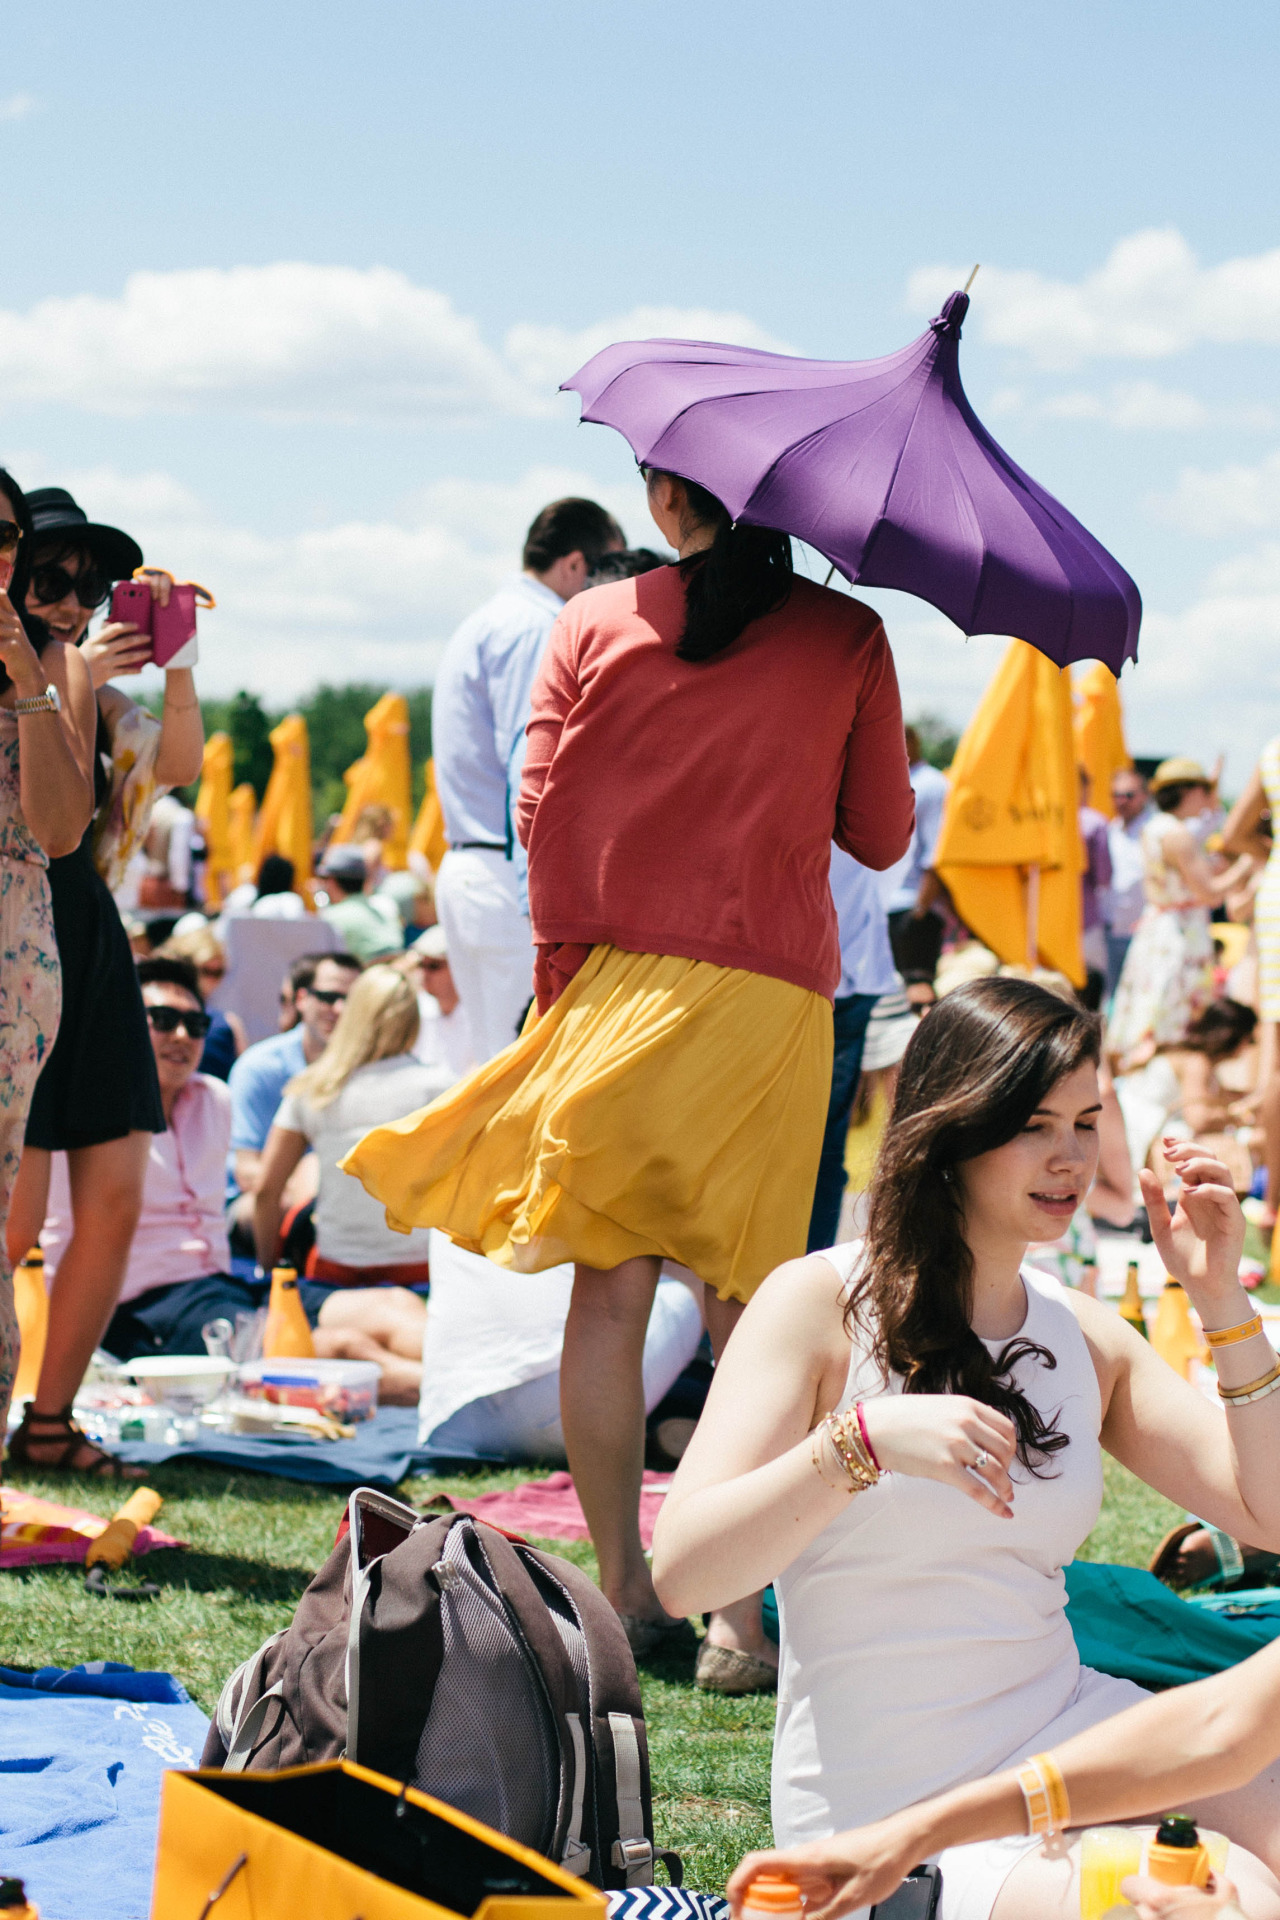 Purple parasol at the Veuve Cliquot Polo Classic. New York - May 2014.